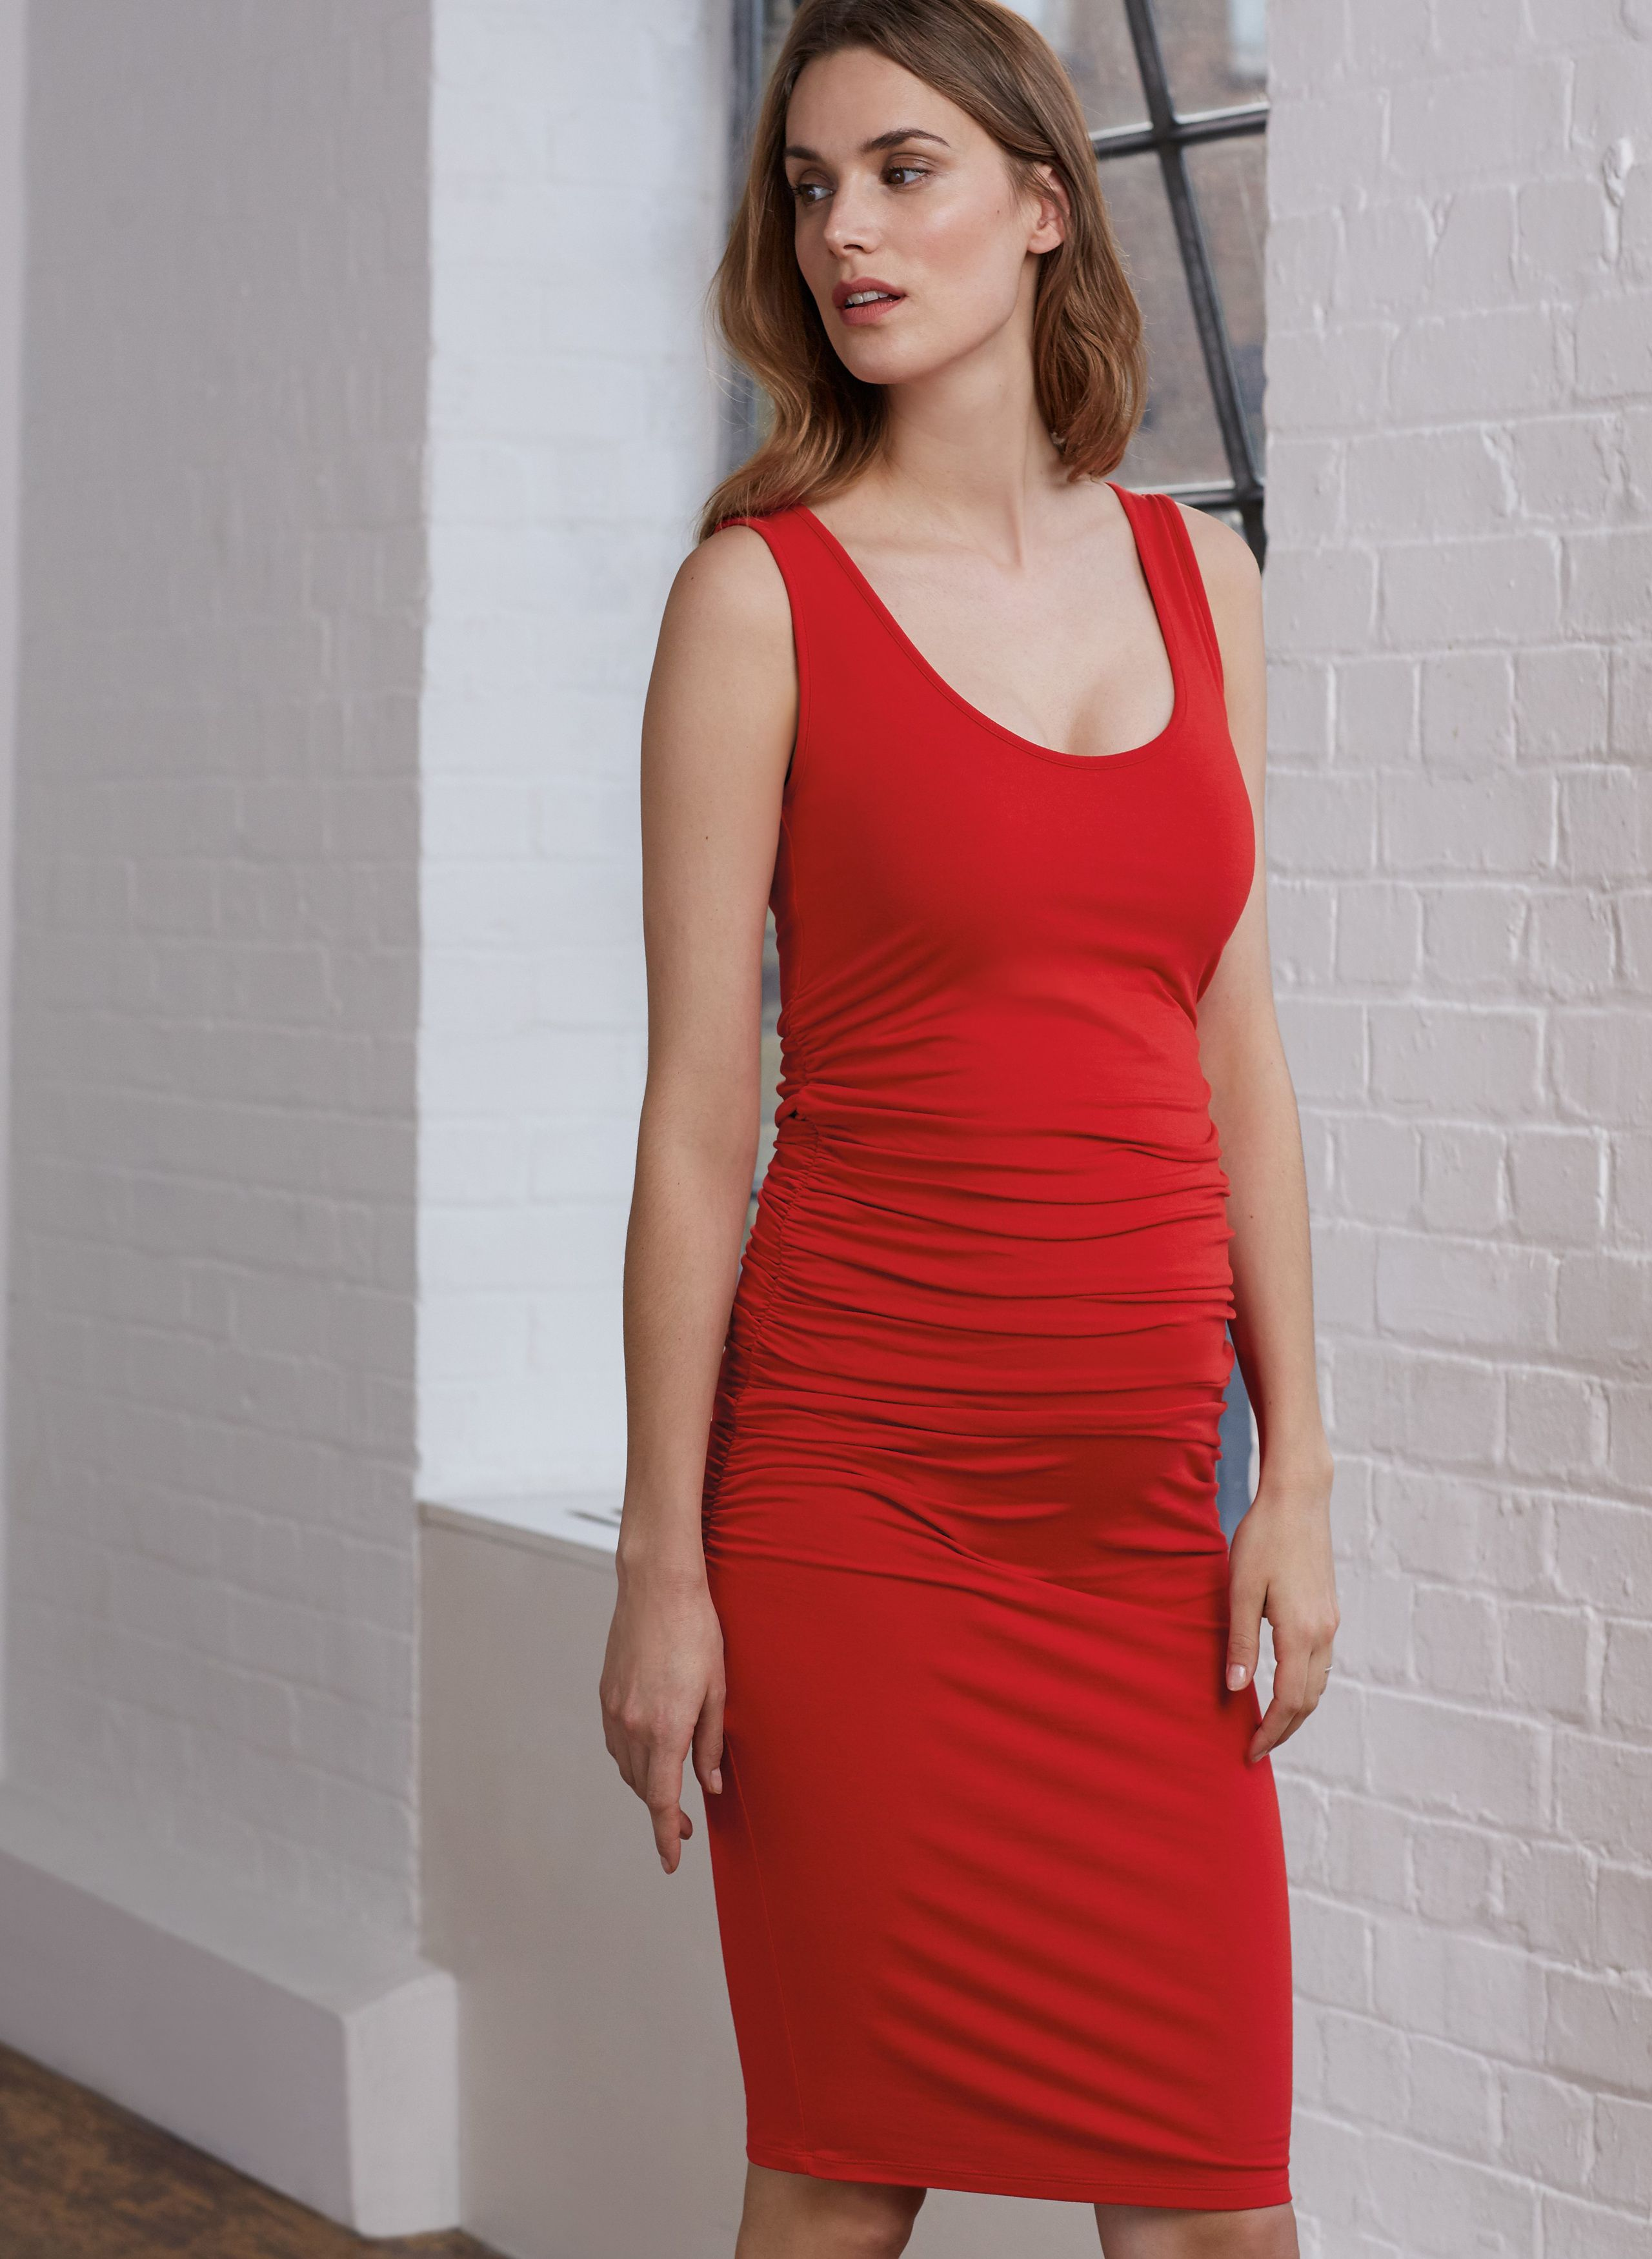 28fceb8d473bbe Ellis Maternity Tank Dress in Red at Isabella Oliver. Discover the leading  British maternity fashion brand for chic, premium quality maternity clothes.